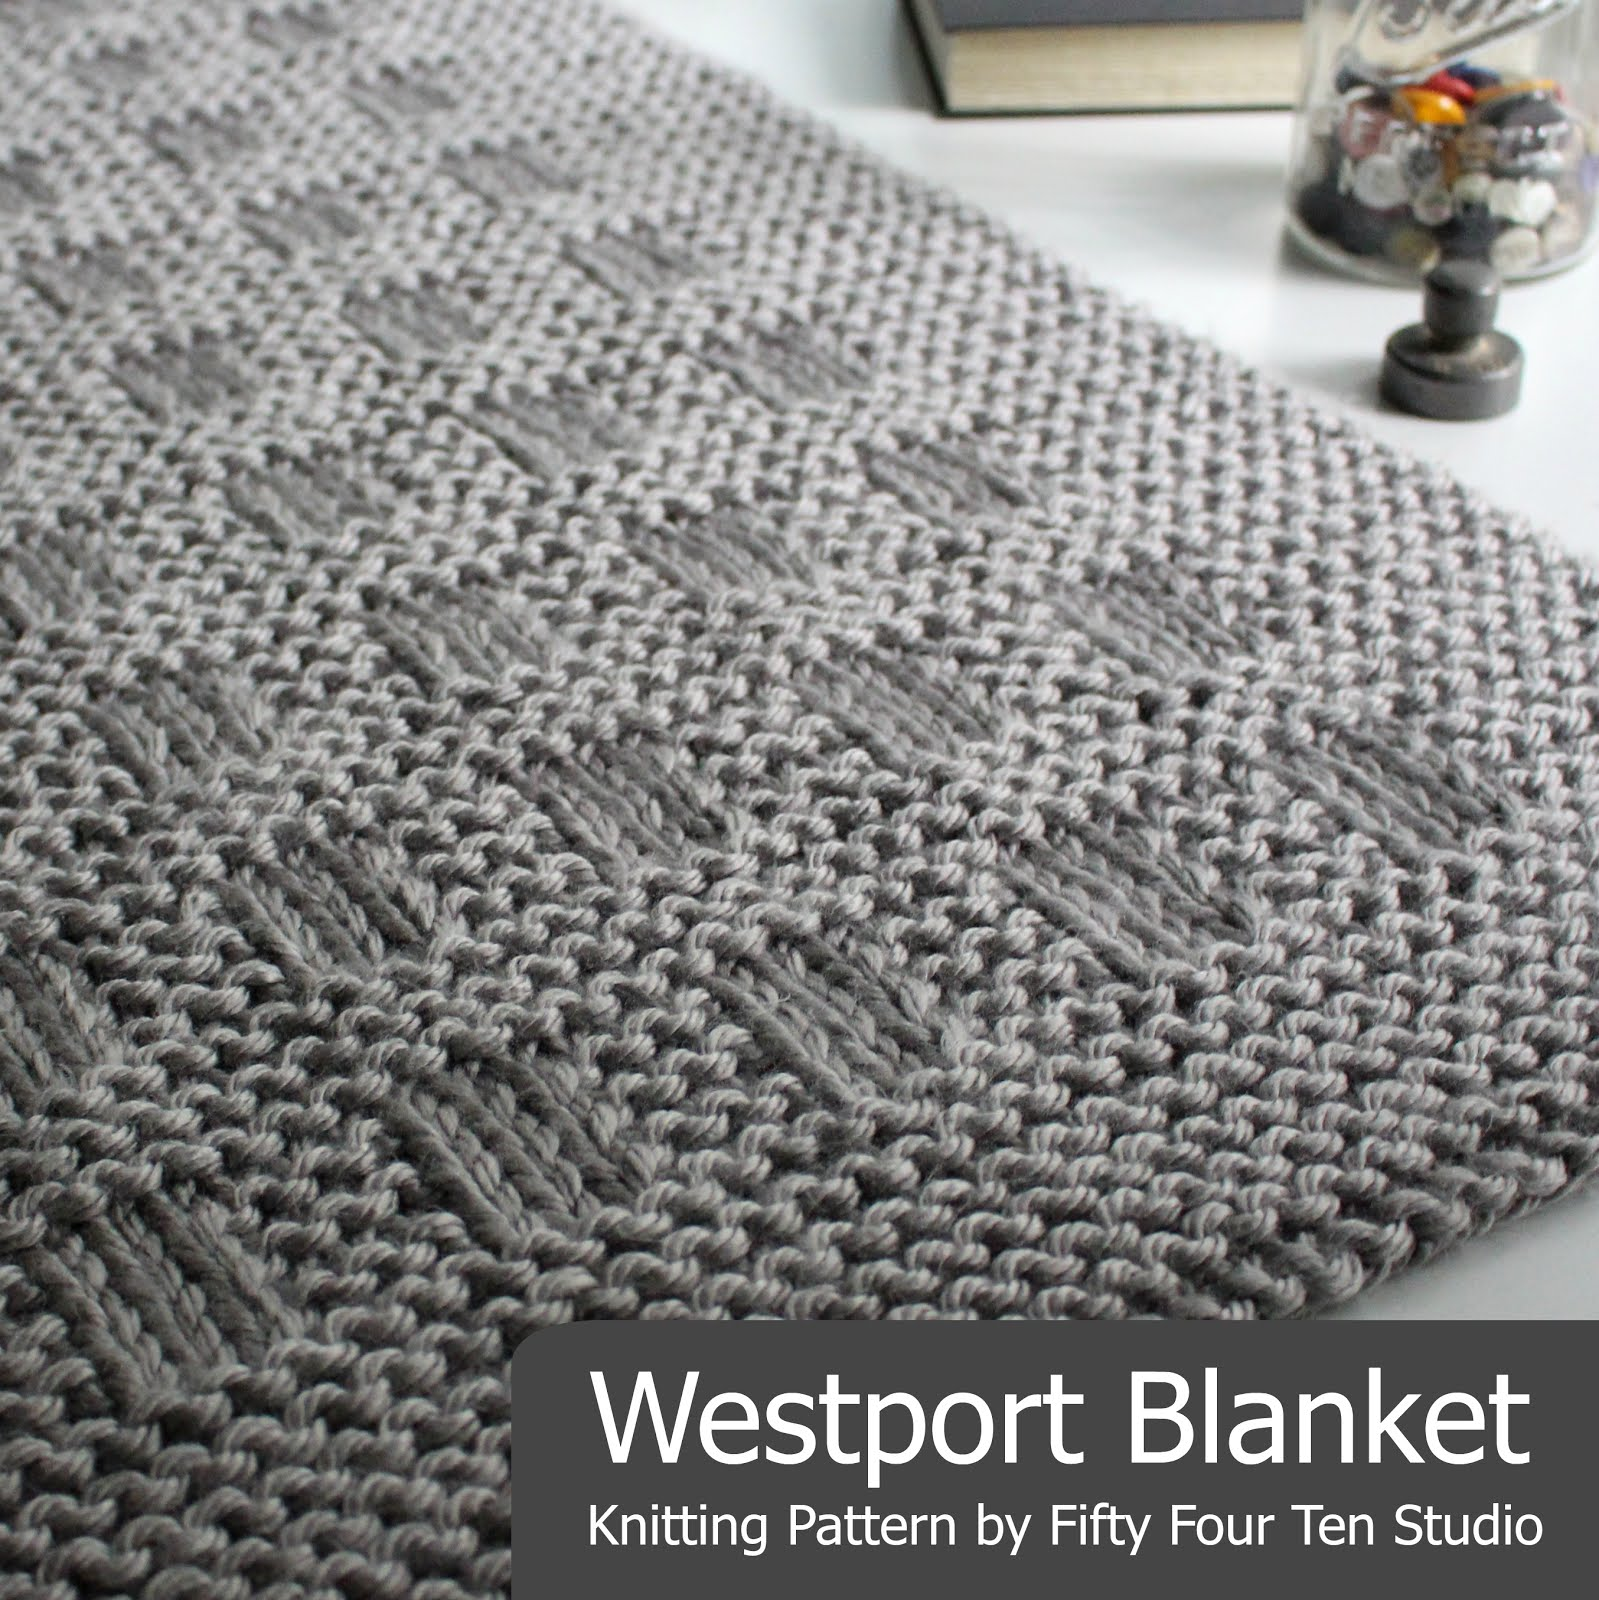 Fifty Four Ten Studio: Brookside Blanket Knitting Pattern - New!